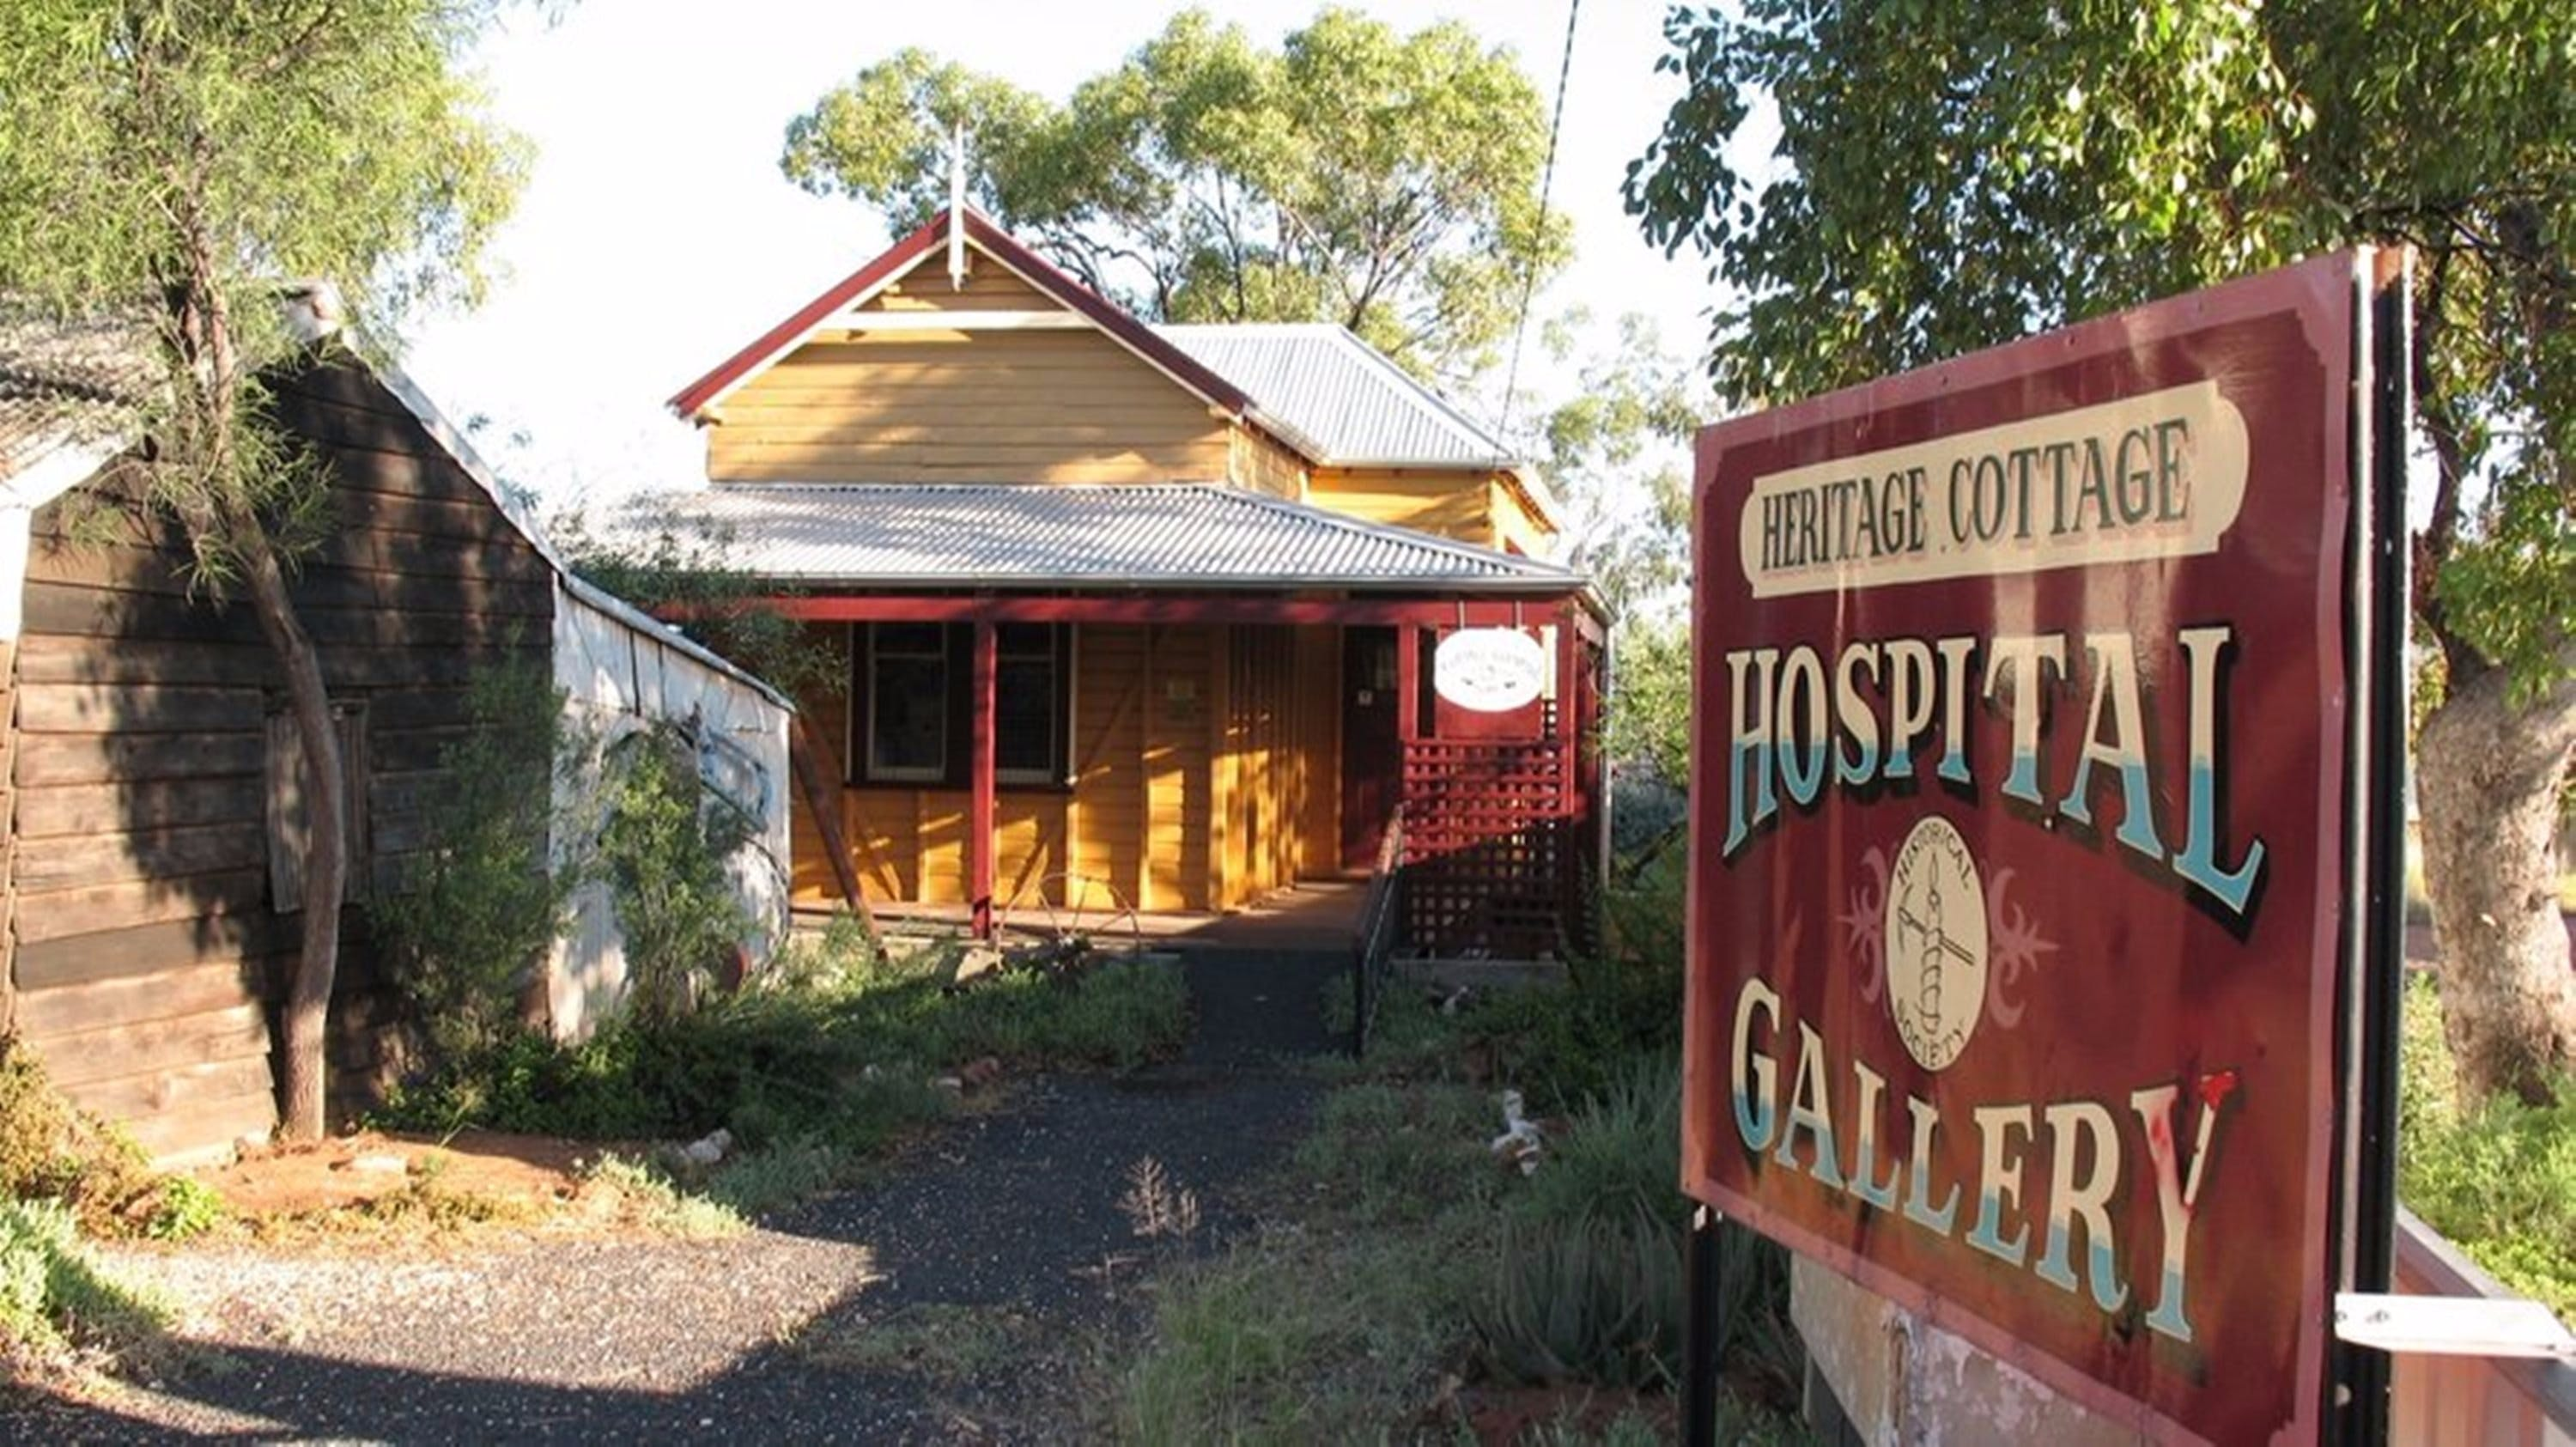 Lightning Ridge Heritage Cottage - Attractions Melbourne